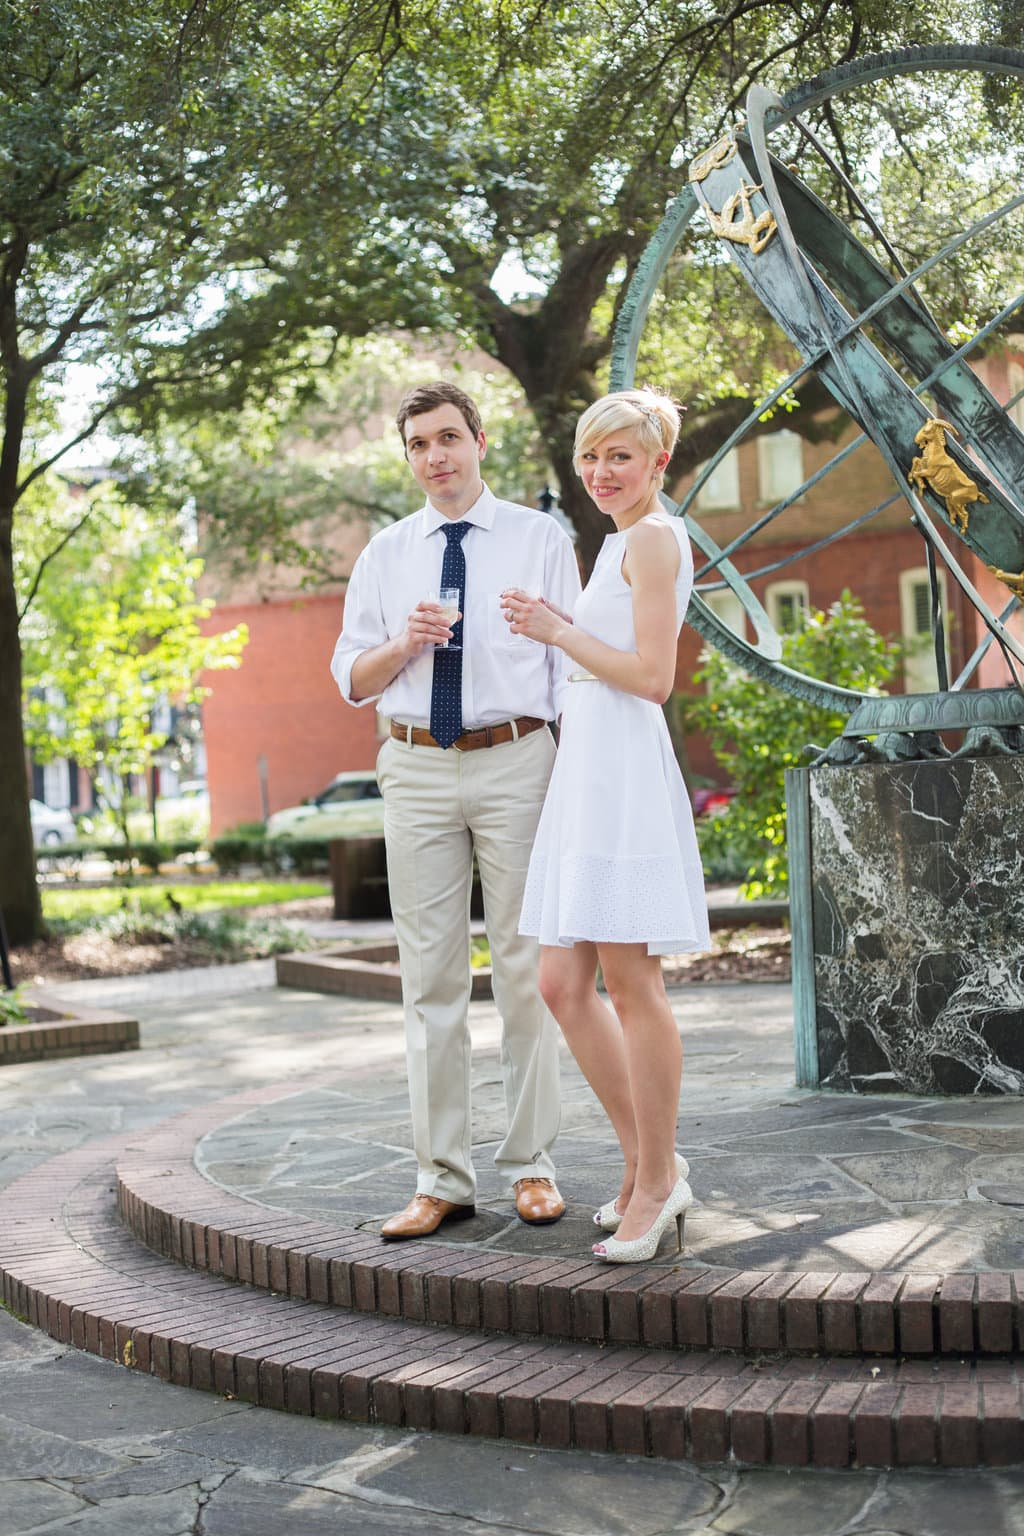 Wedding Pictures in Troup Square in Savannah, GA